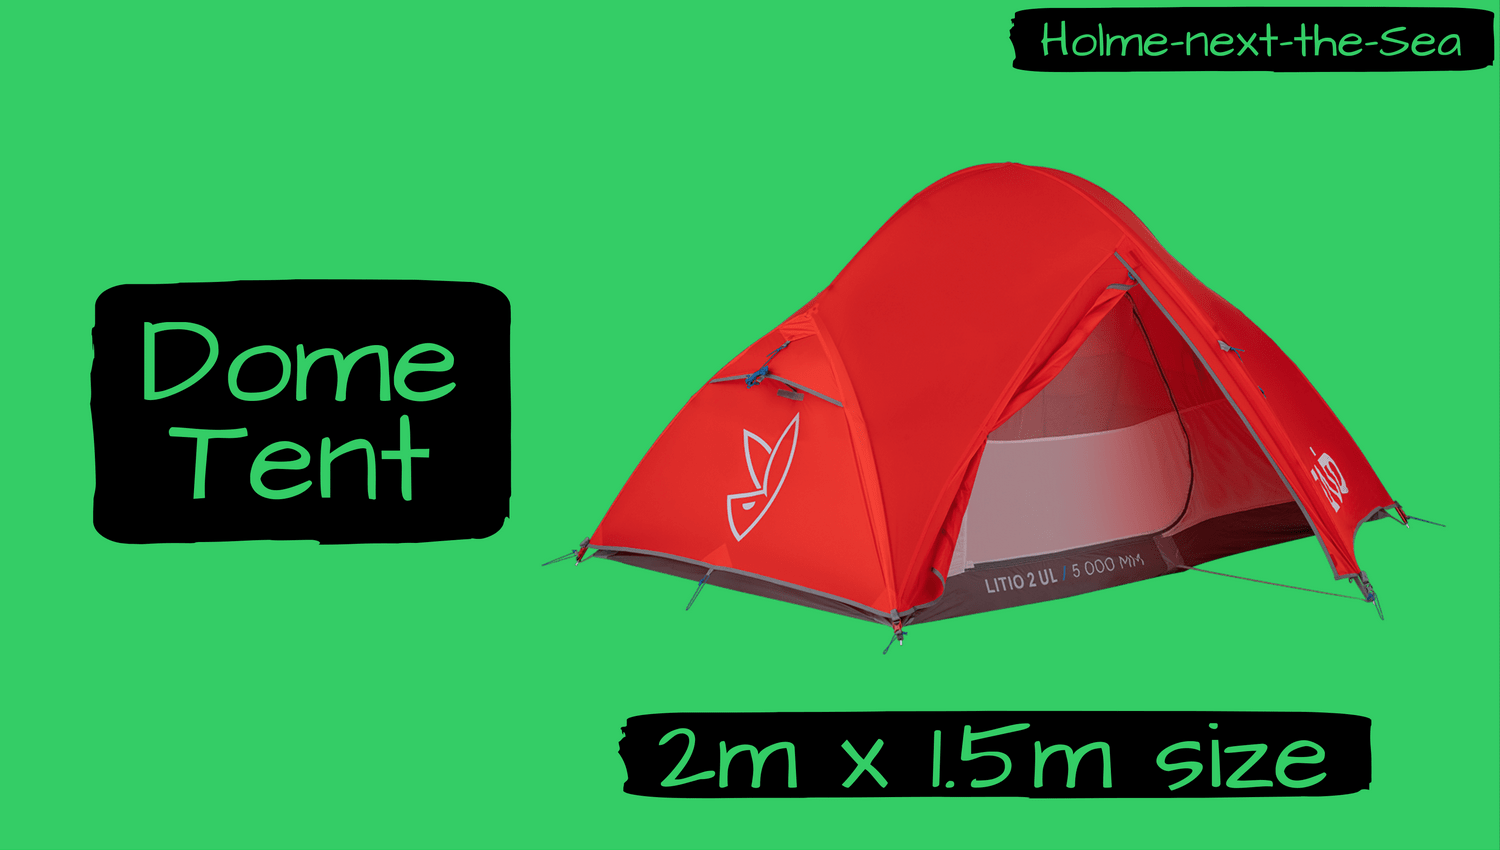 Holme - Dome Tent